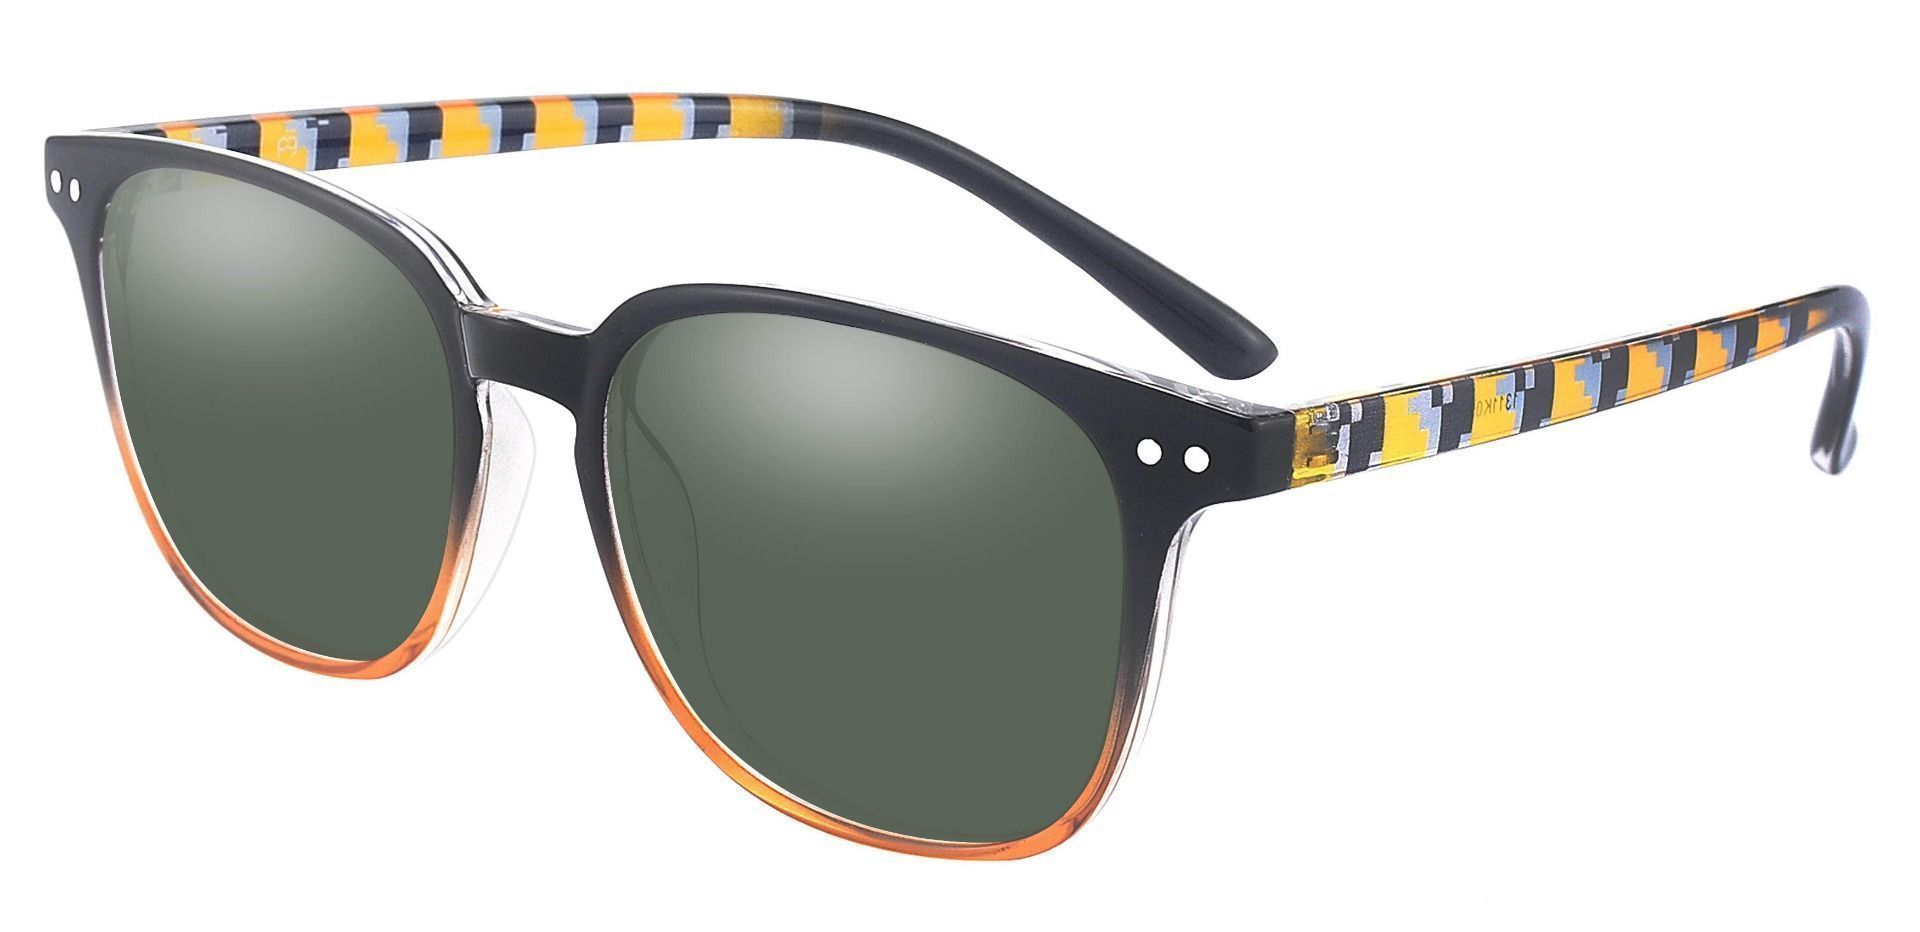 Ravine Oval Prescription Sunglasses - Black Frame With Green Lenses